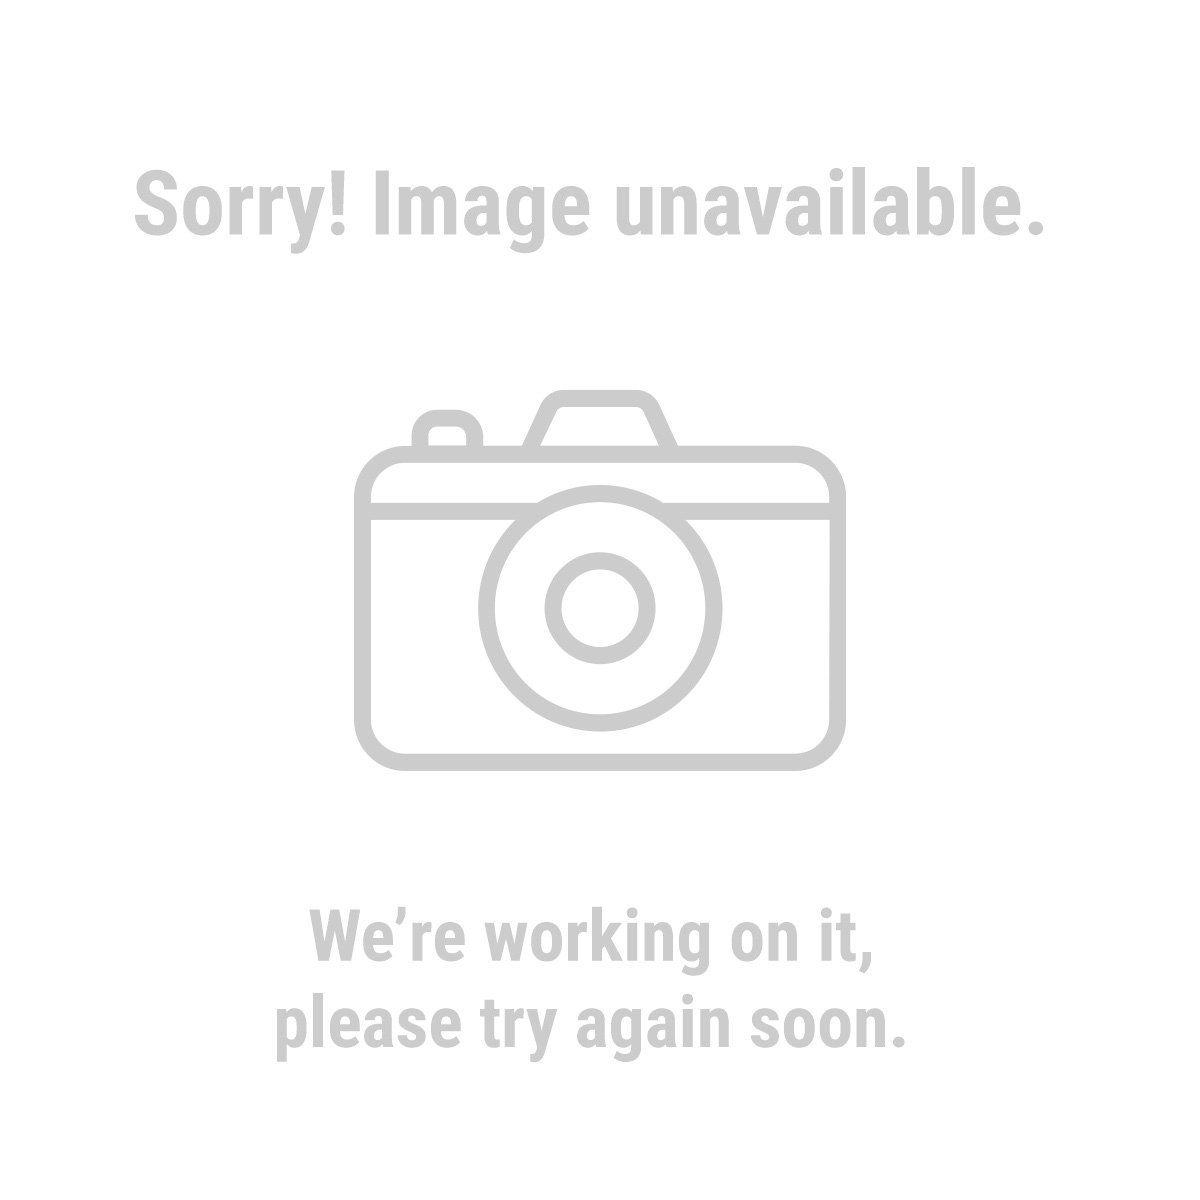 Cen-Tech® 98568 CAN OBDII Code Reader with Multilingual Menu